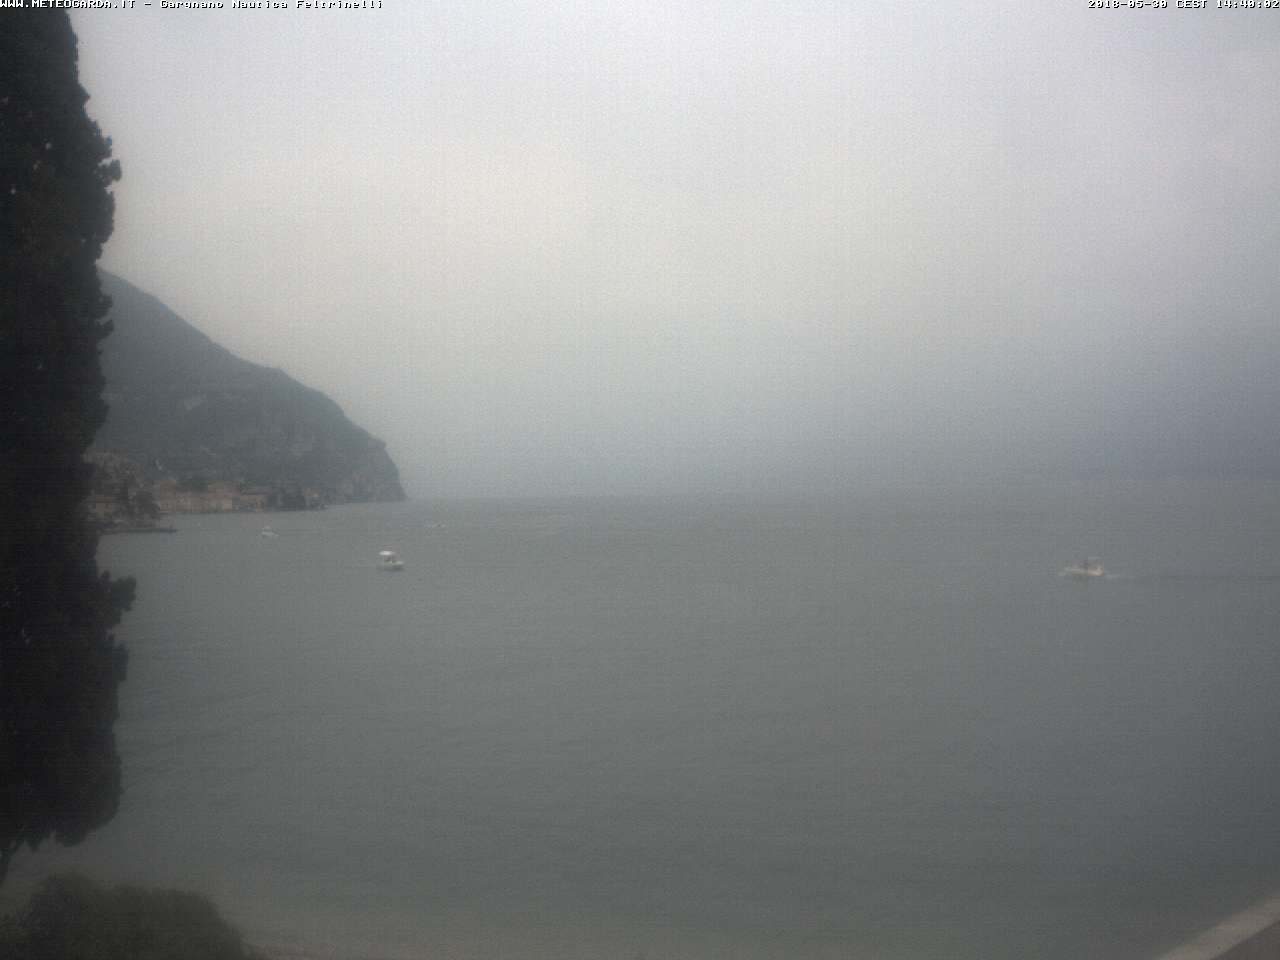 Webcam auf der Nautica Feltrinelli in Gargnano - meteogarda.it